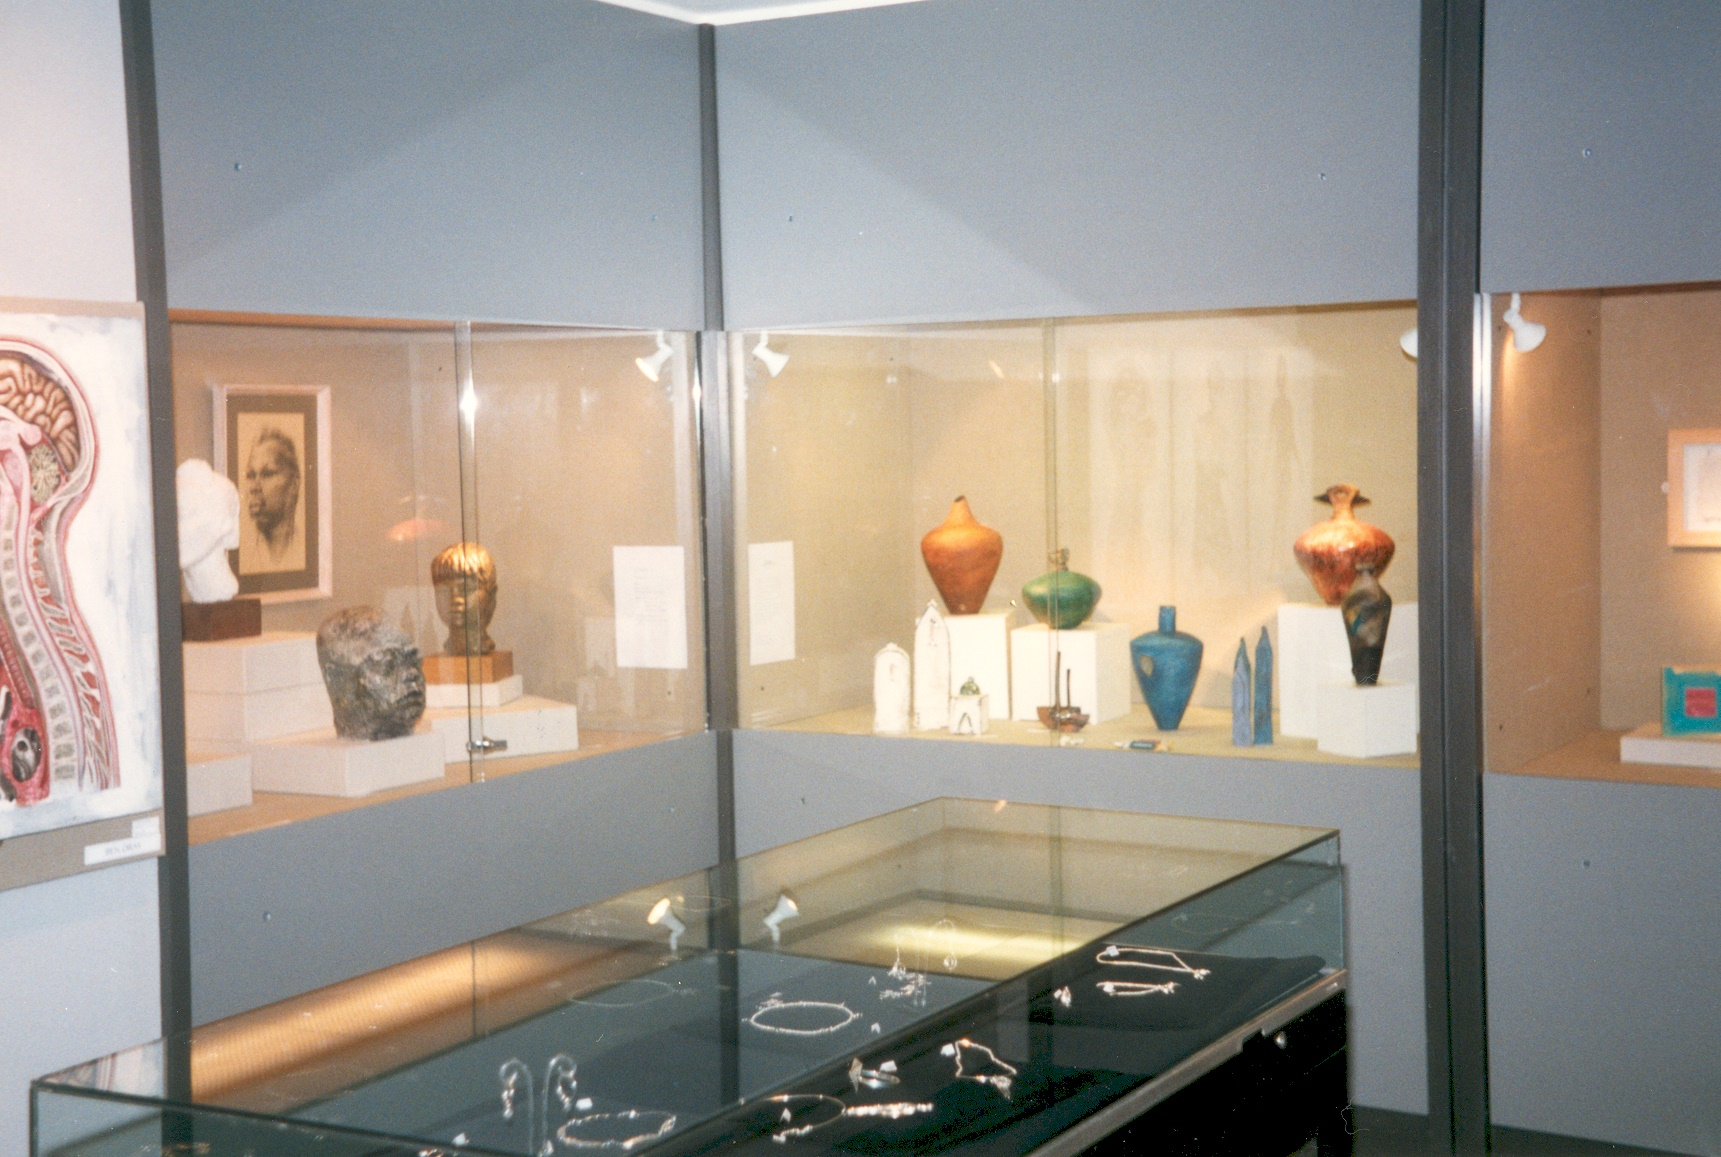 The refurbished Elmbridge Museum on 10th December 1996, showing the Temporary Exhibition with sculptures and vases in the wall cases and jewellery in the central island case.